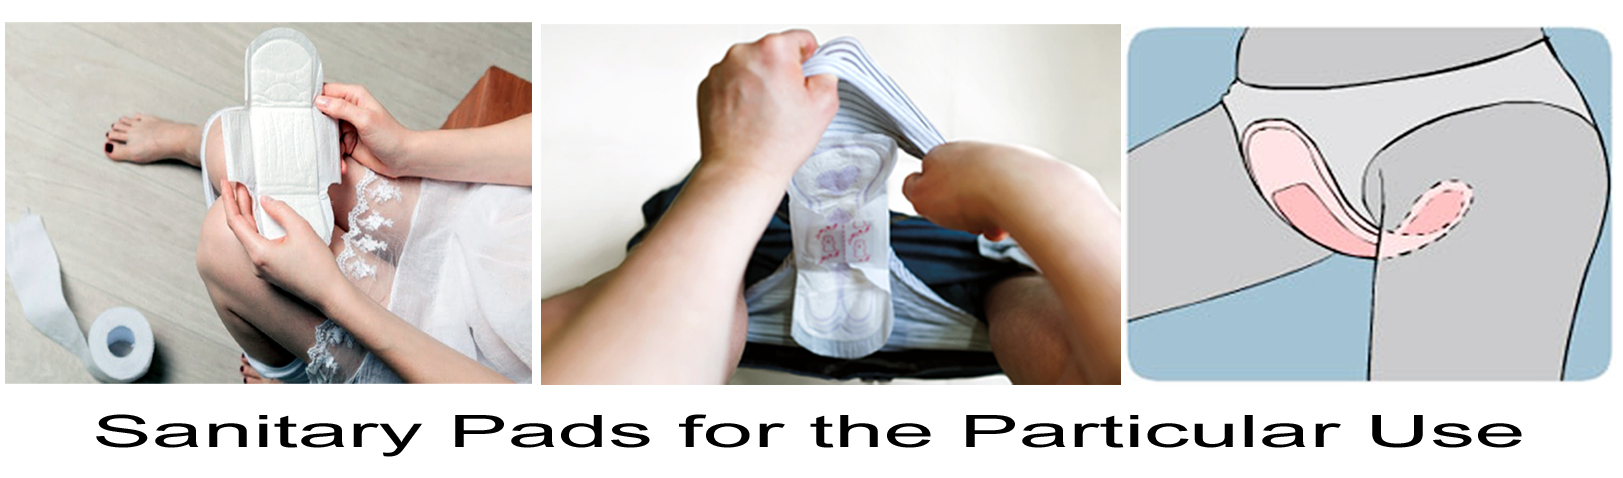 Sanitary Pads for the Particular Uses